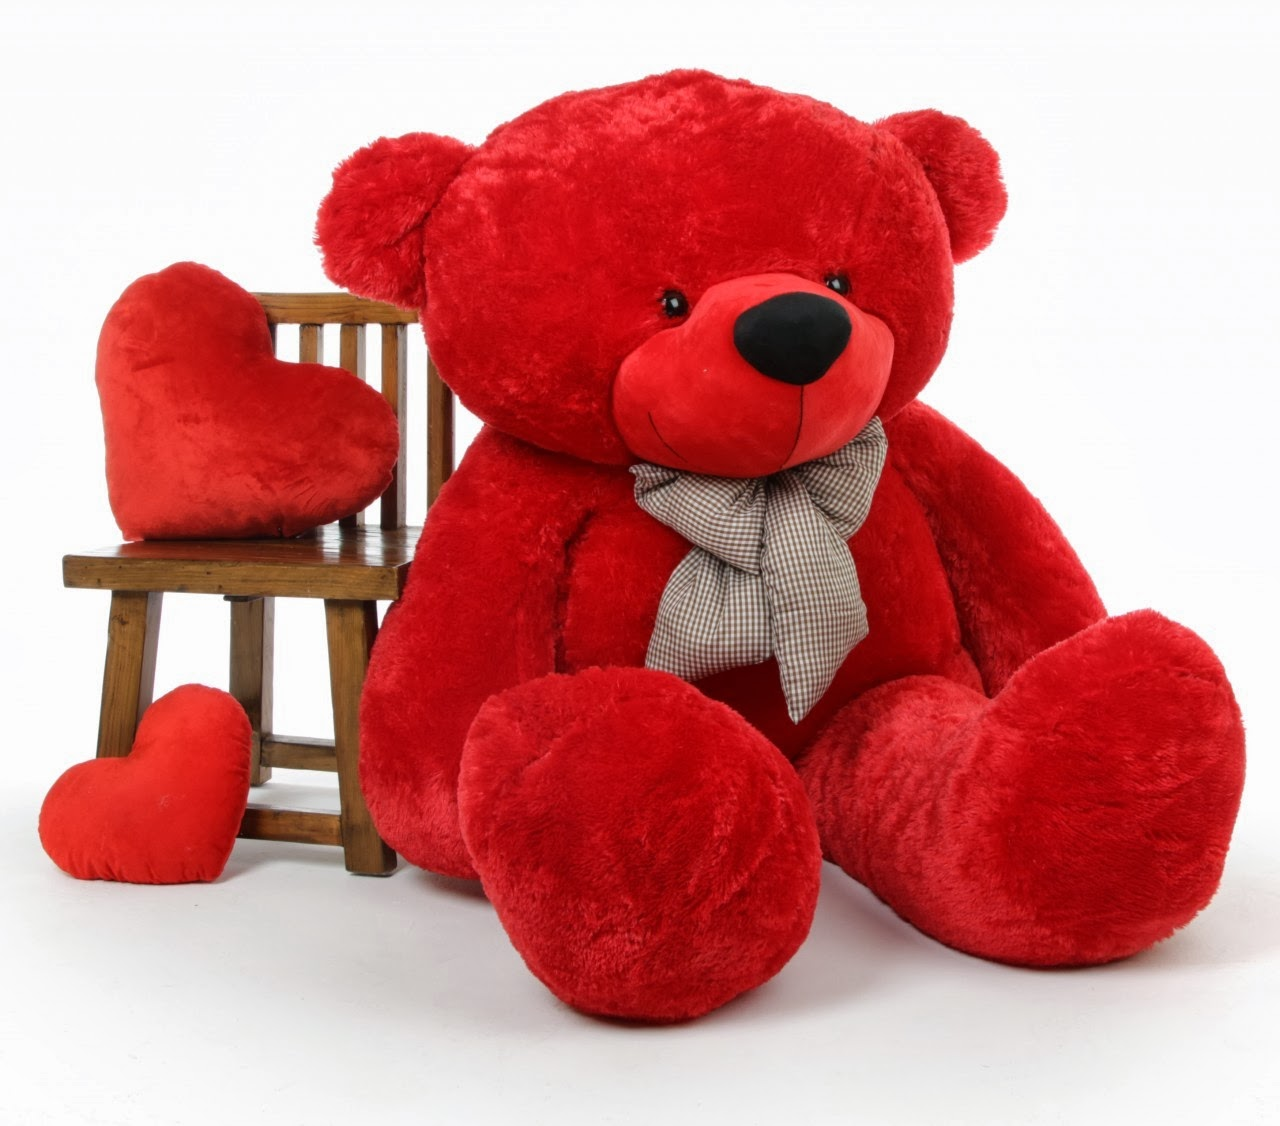 Bitsy Cuddles 65in is a giant red life size teddy bear